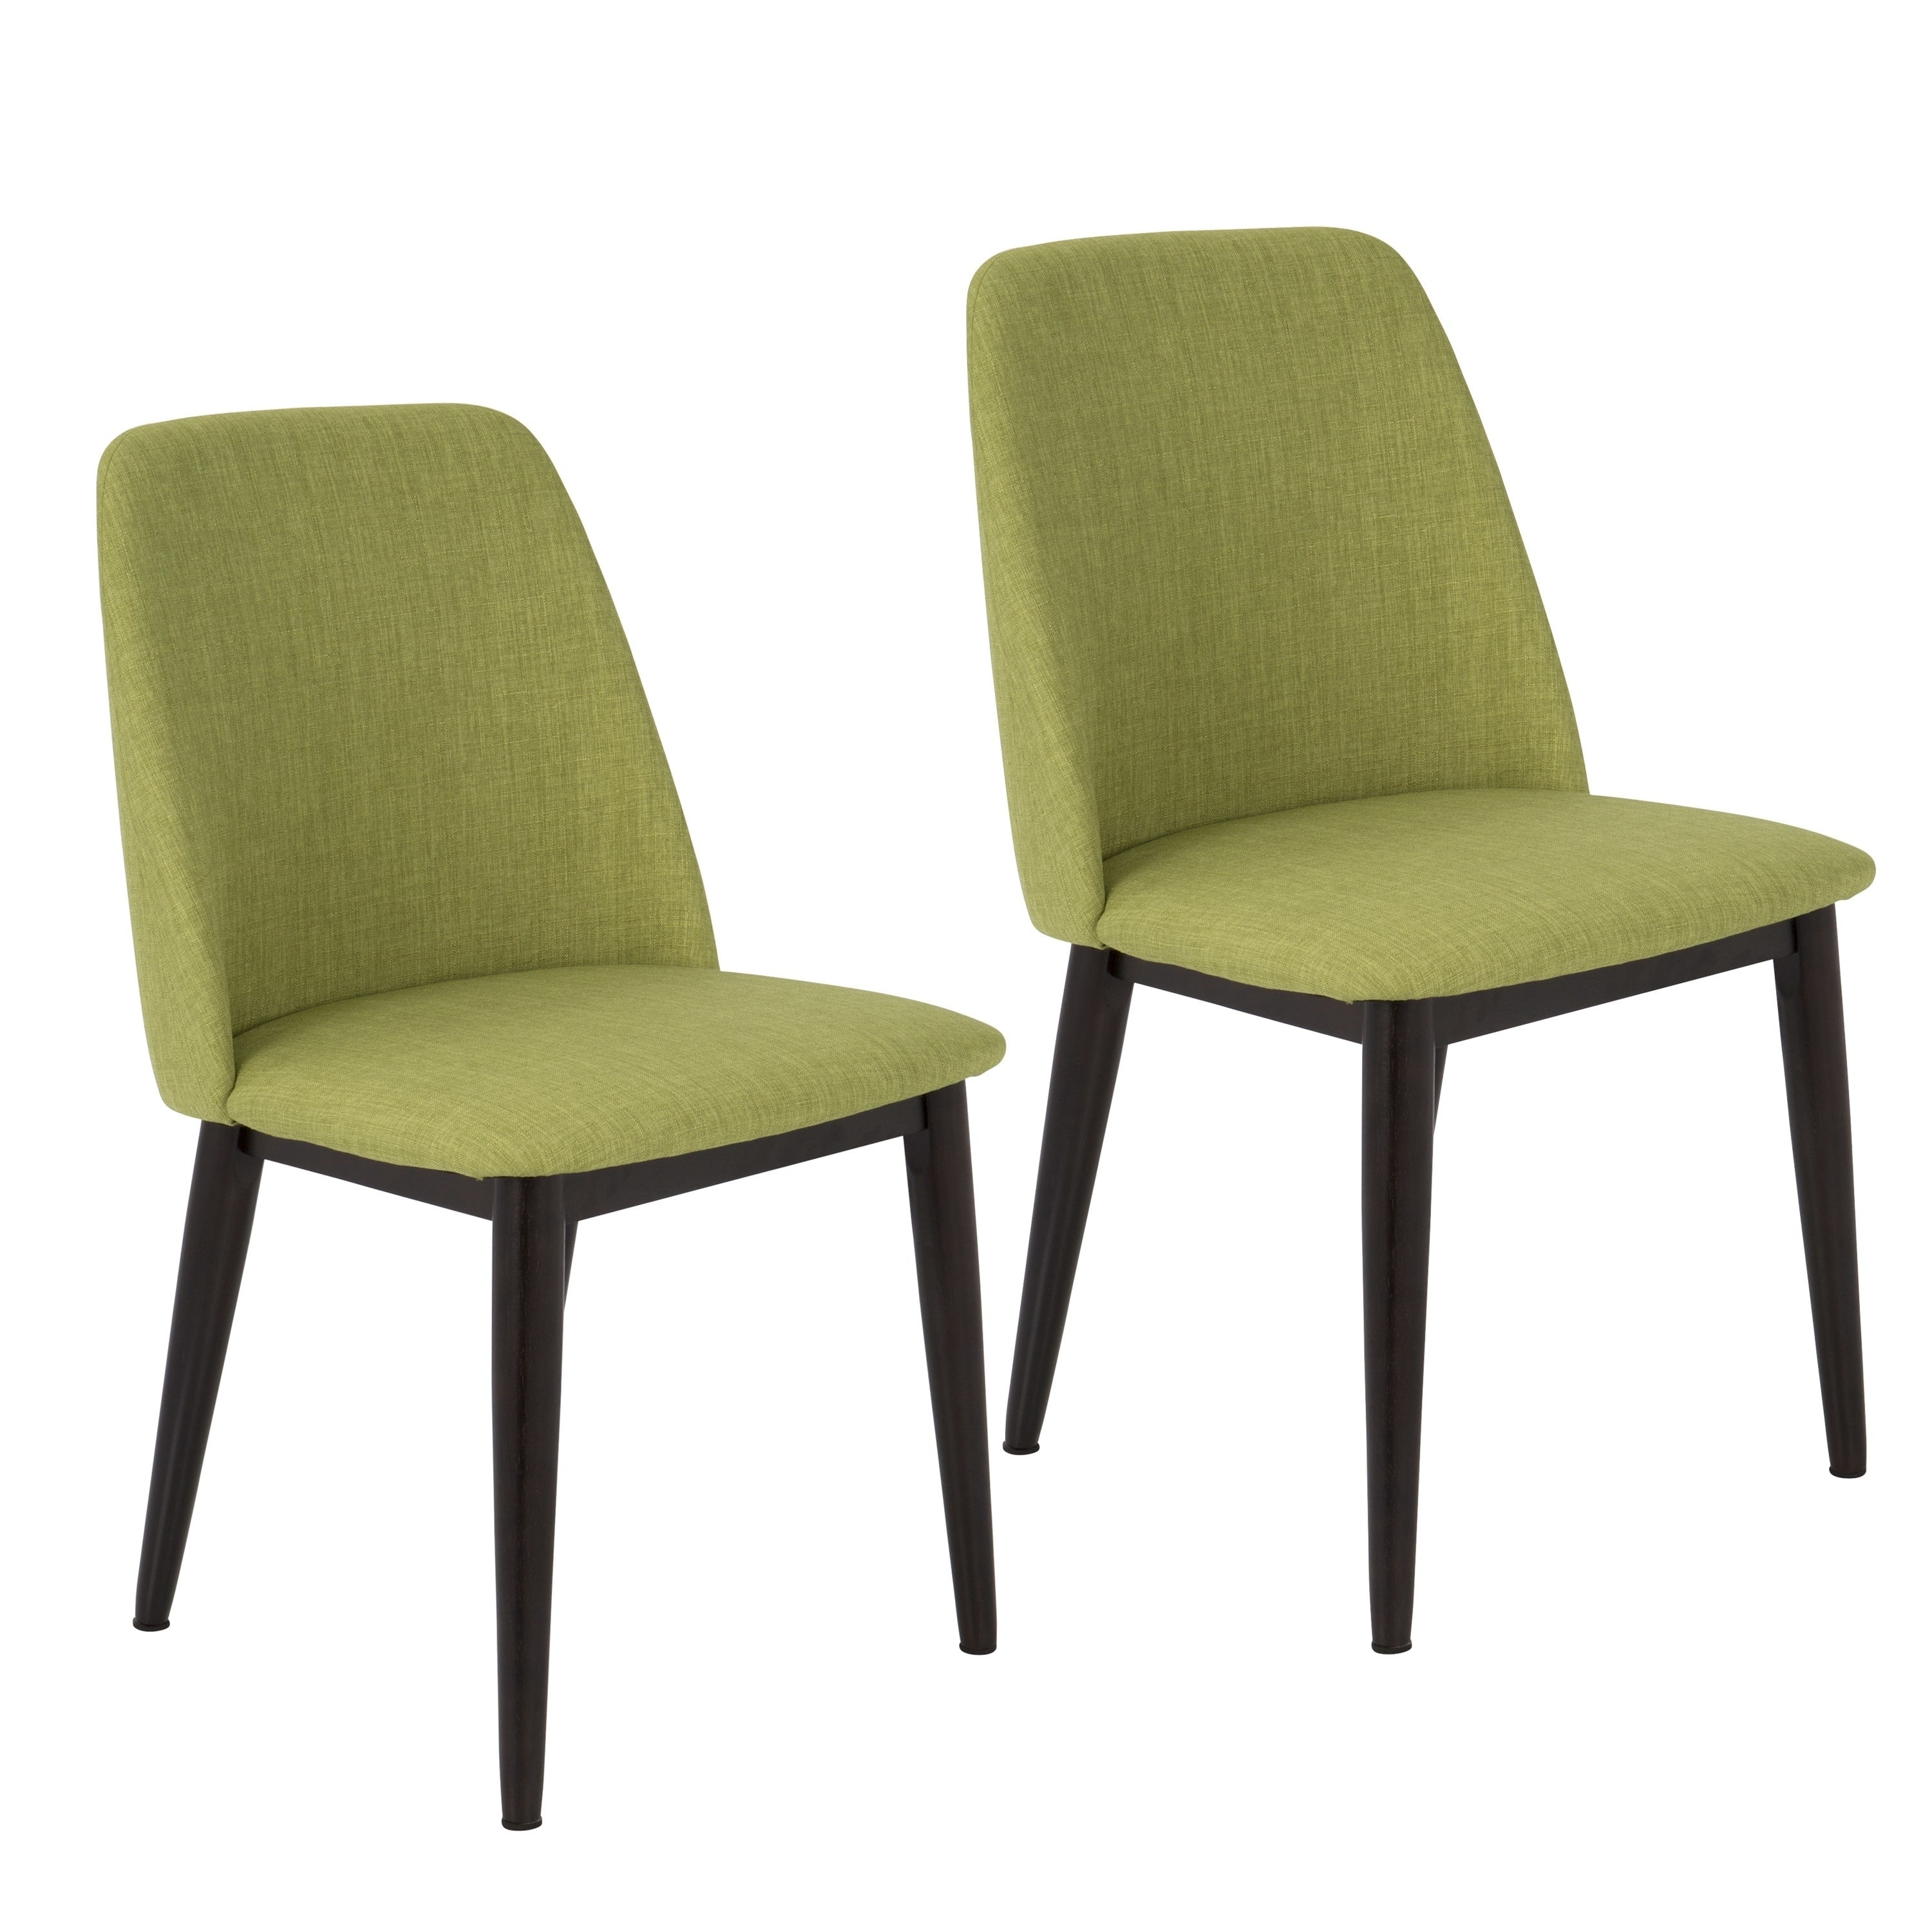 Shop Tintori Fabric Upholstered Mid Century Style Dining Chairs Set